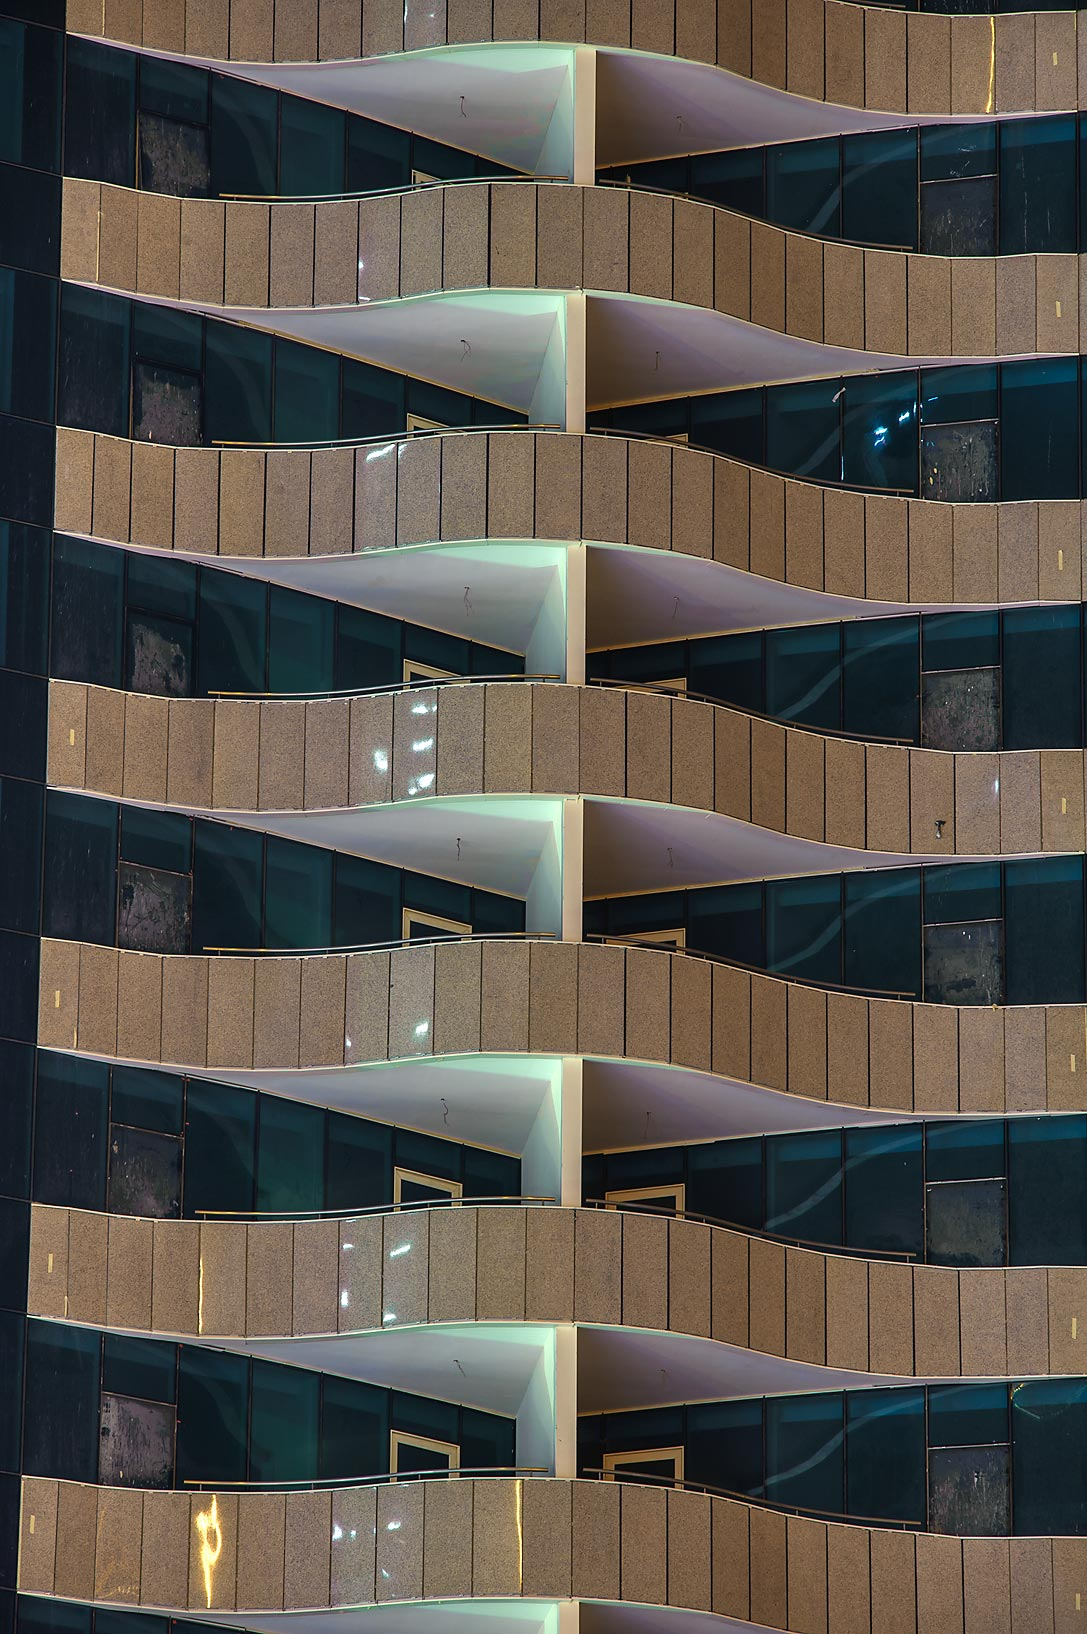 Balconies in West Bay from Q-Shield head Offices St.. Doha, Qatar